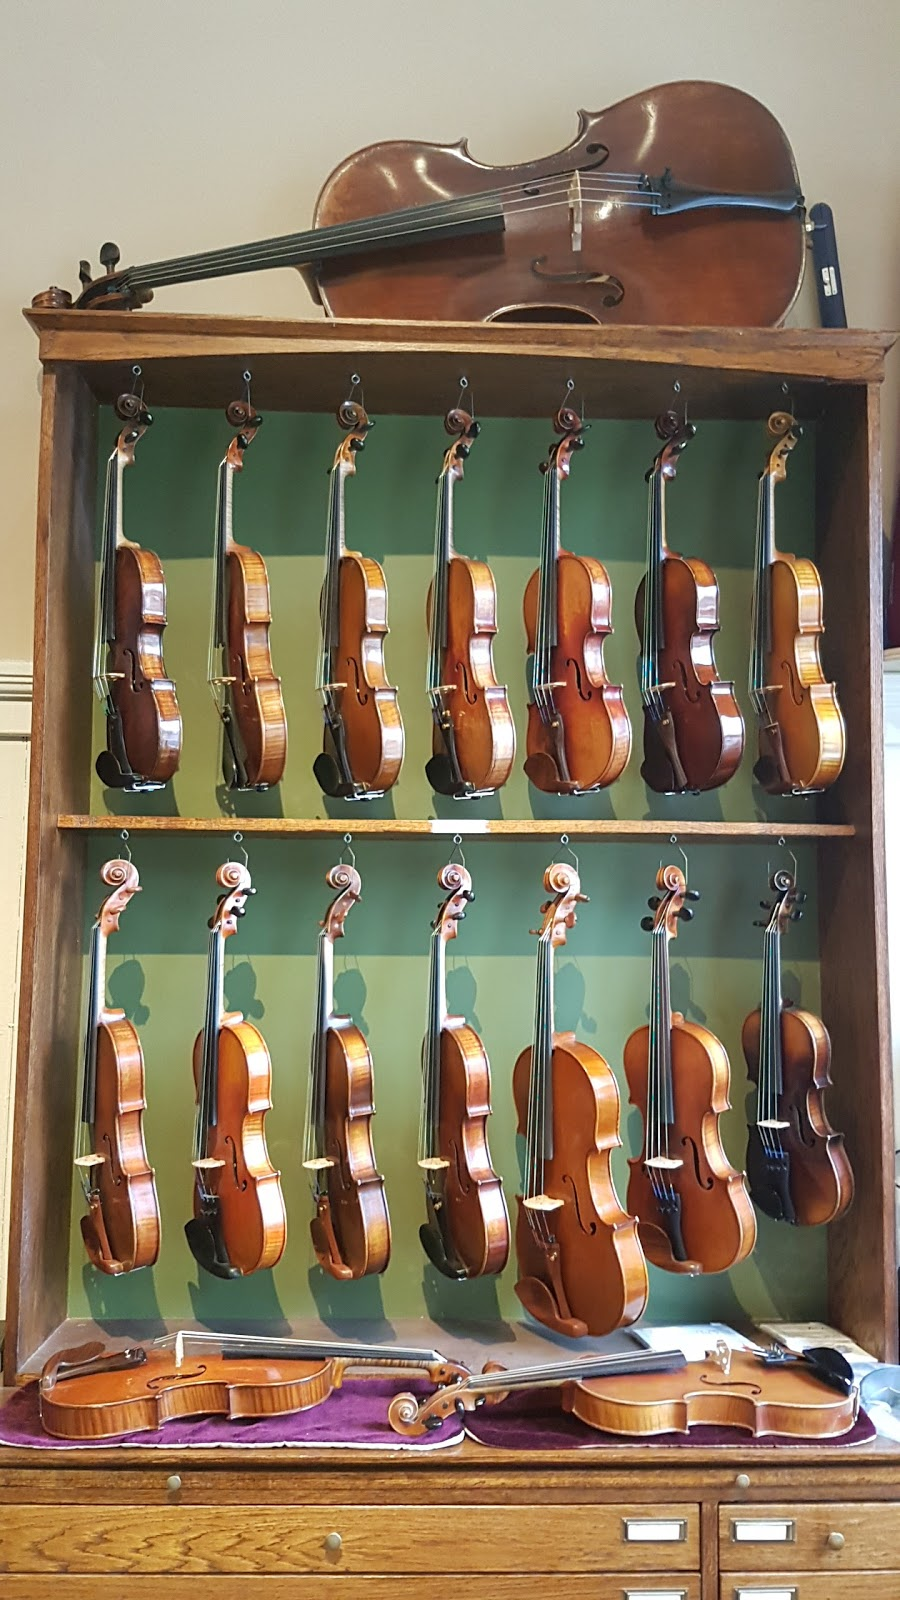 Bowed Instrument Shop The | electronics store | 6199 Chebucto Rd, Halifax, NS B3L 1K7, Canada | 9024063110 OR +1 902-406-3110